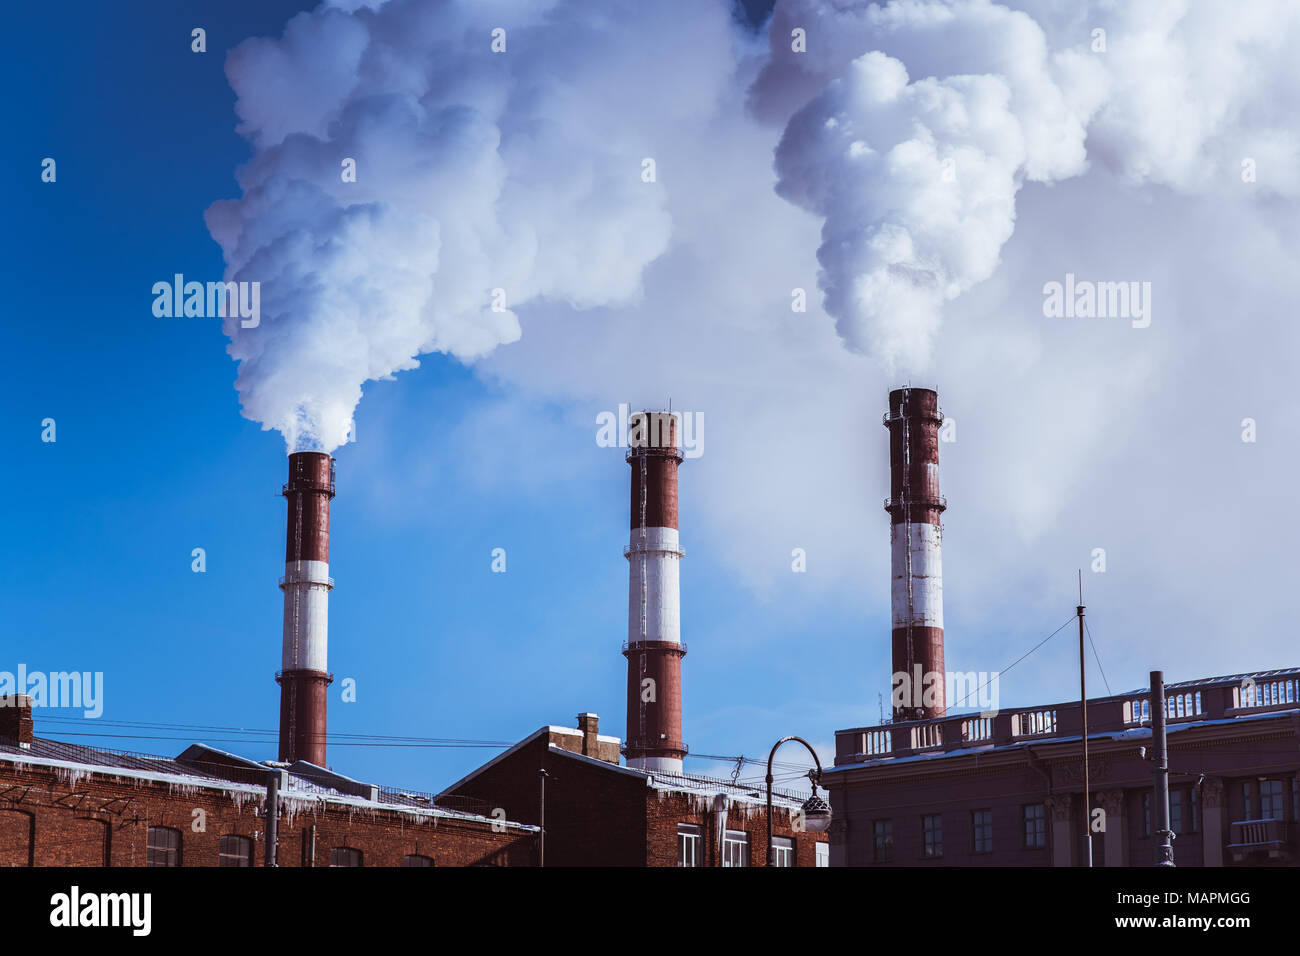 Thermal power plant pipes erupt smoke into the air in St. Petersburg, Russia - Stock Image